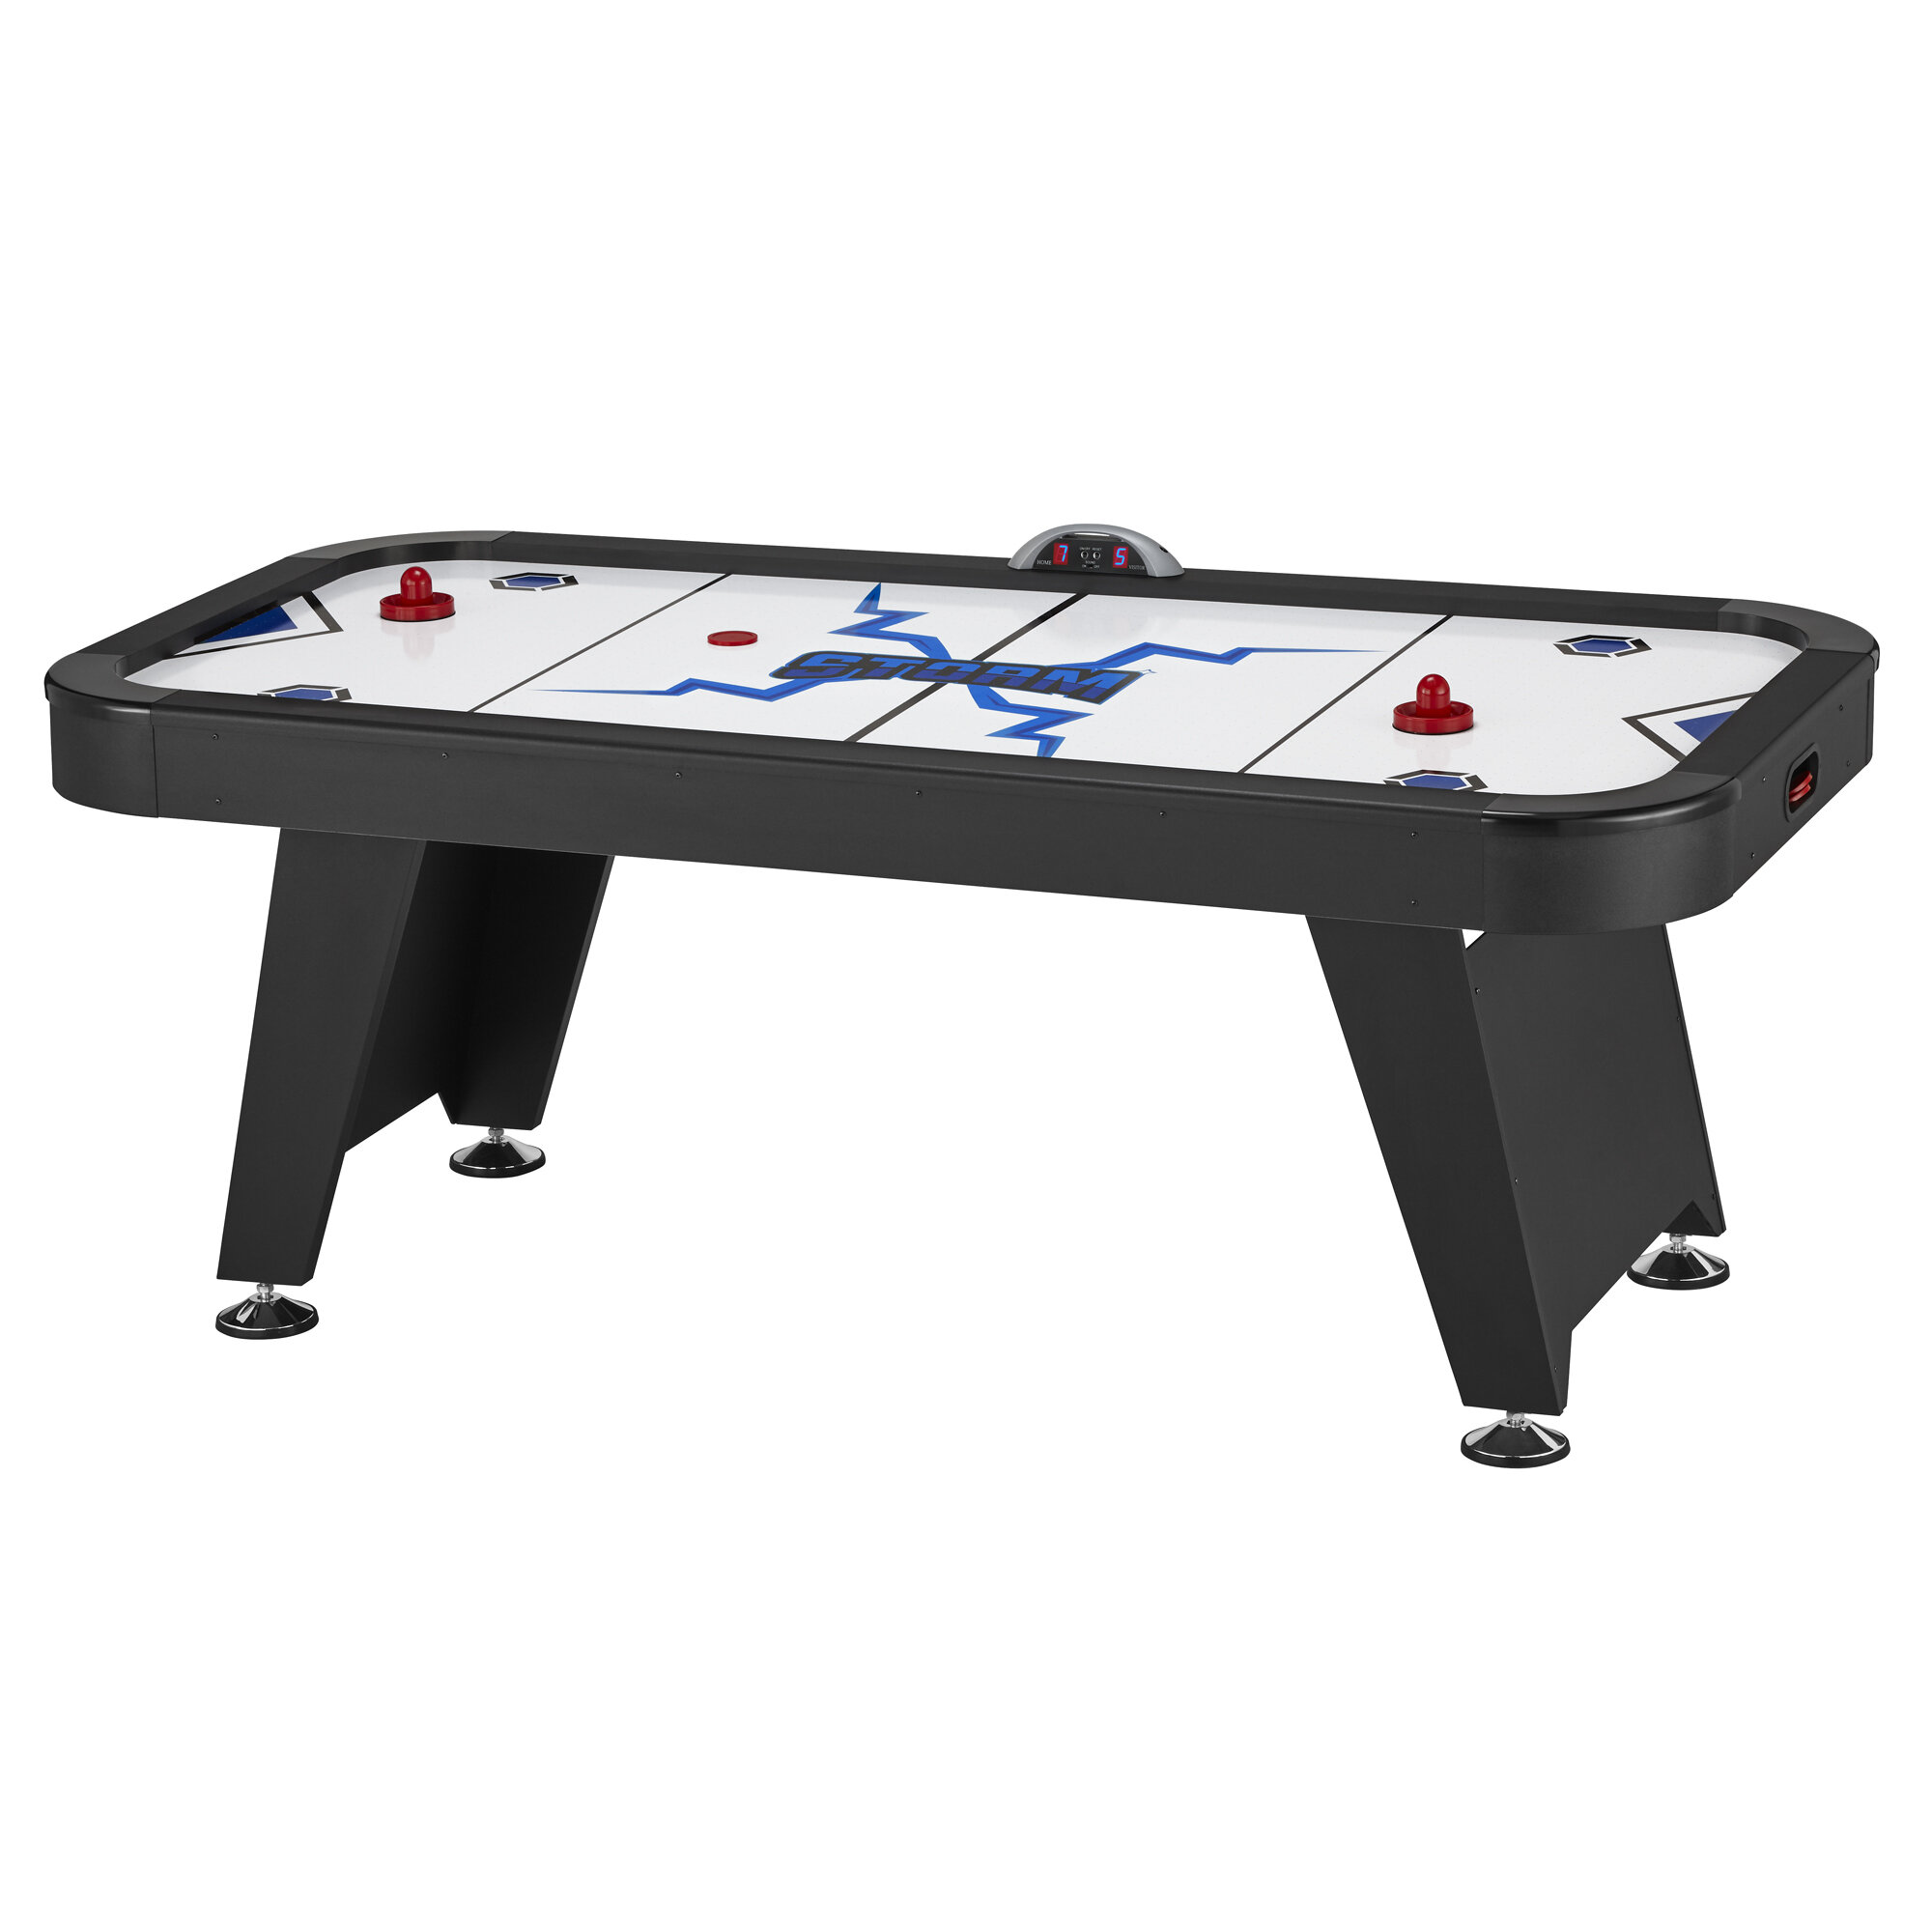 Gld Products Fat Cat Storm 7 Air Hockey Table Ebay